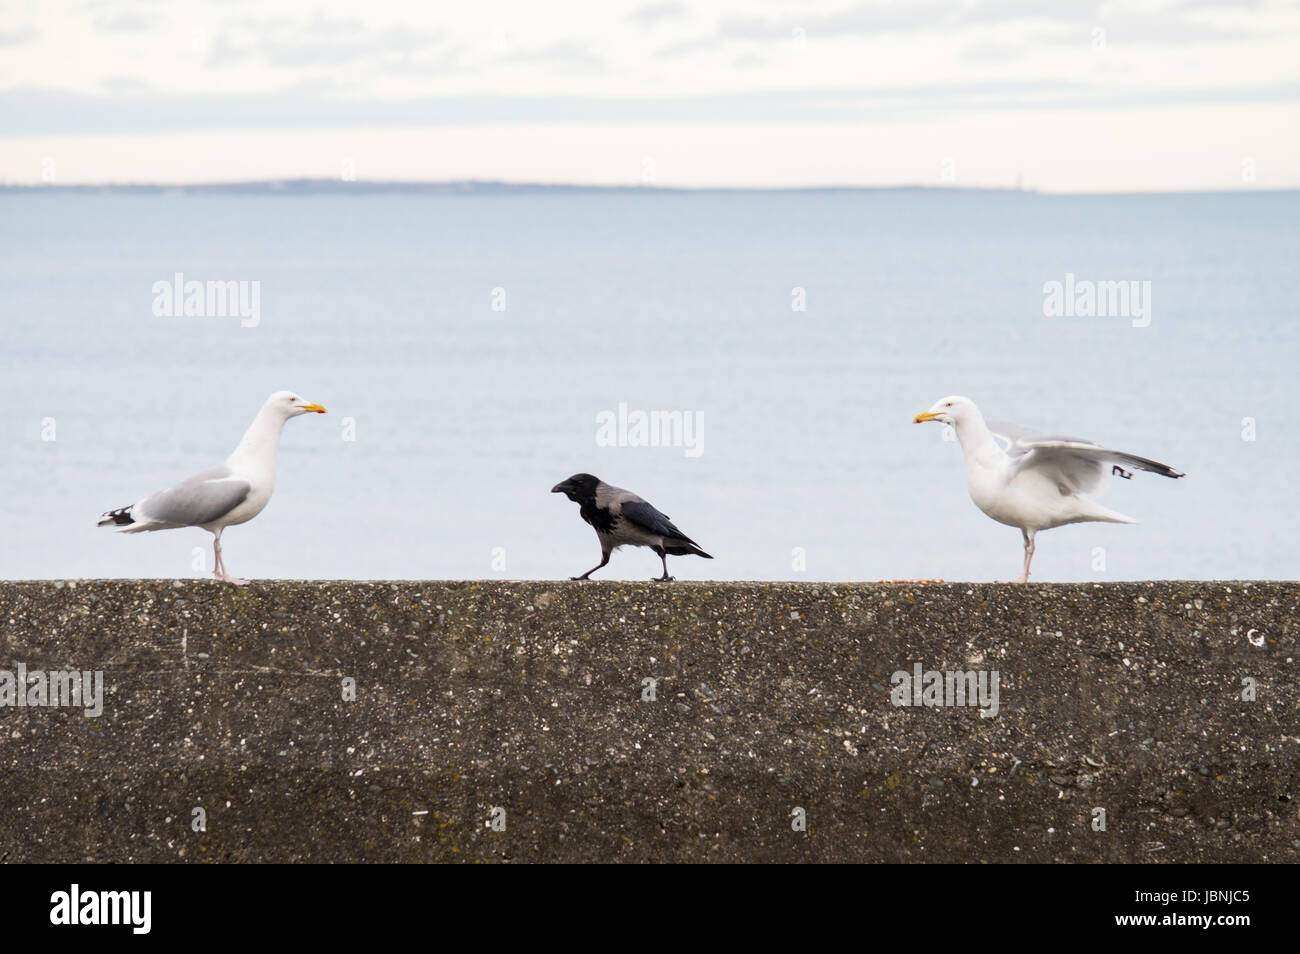 Hooded crow between two gulls - Stock Image